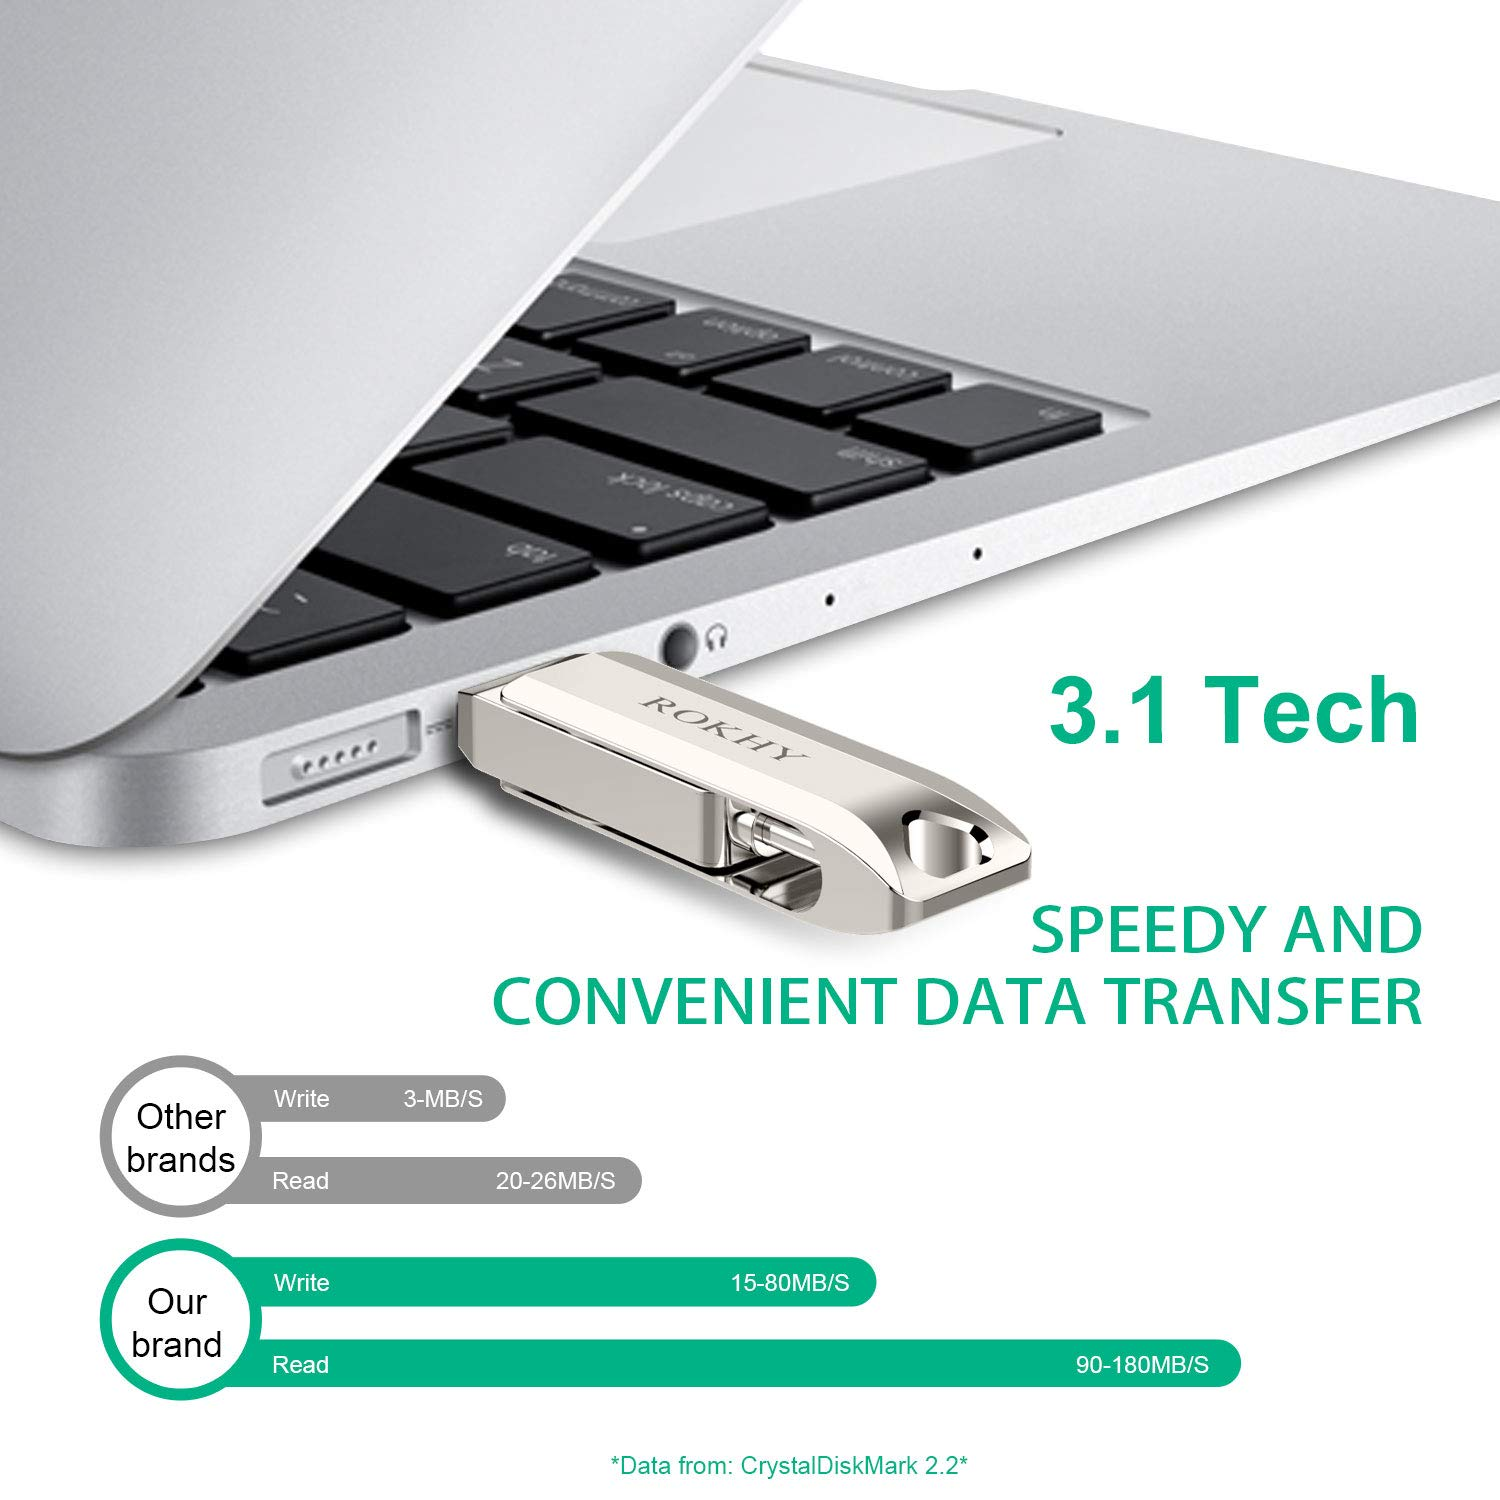 Flash Drive USB Type C Both 3.1 Tech - 2 in 1 Dual Drive Memory Stick High Speed OTG for Android Smartphone Computer, MacBook, Chromebook Pixel - 128GB by ROKHY (Image #2)